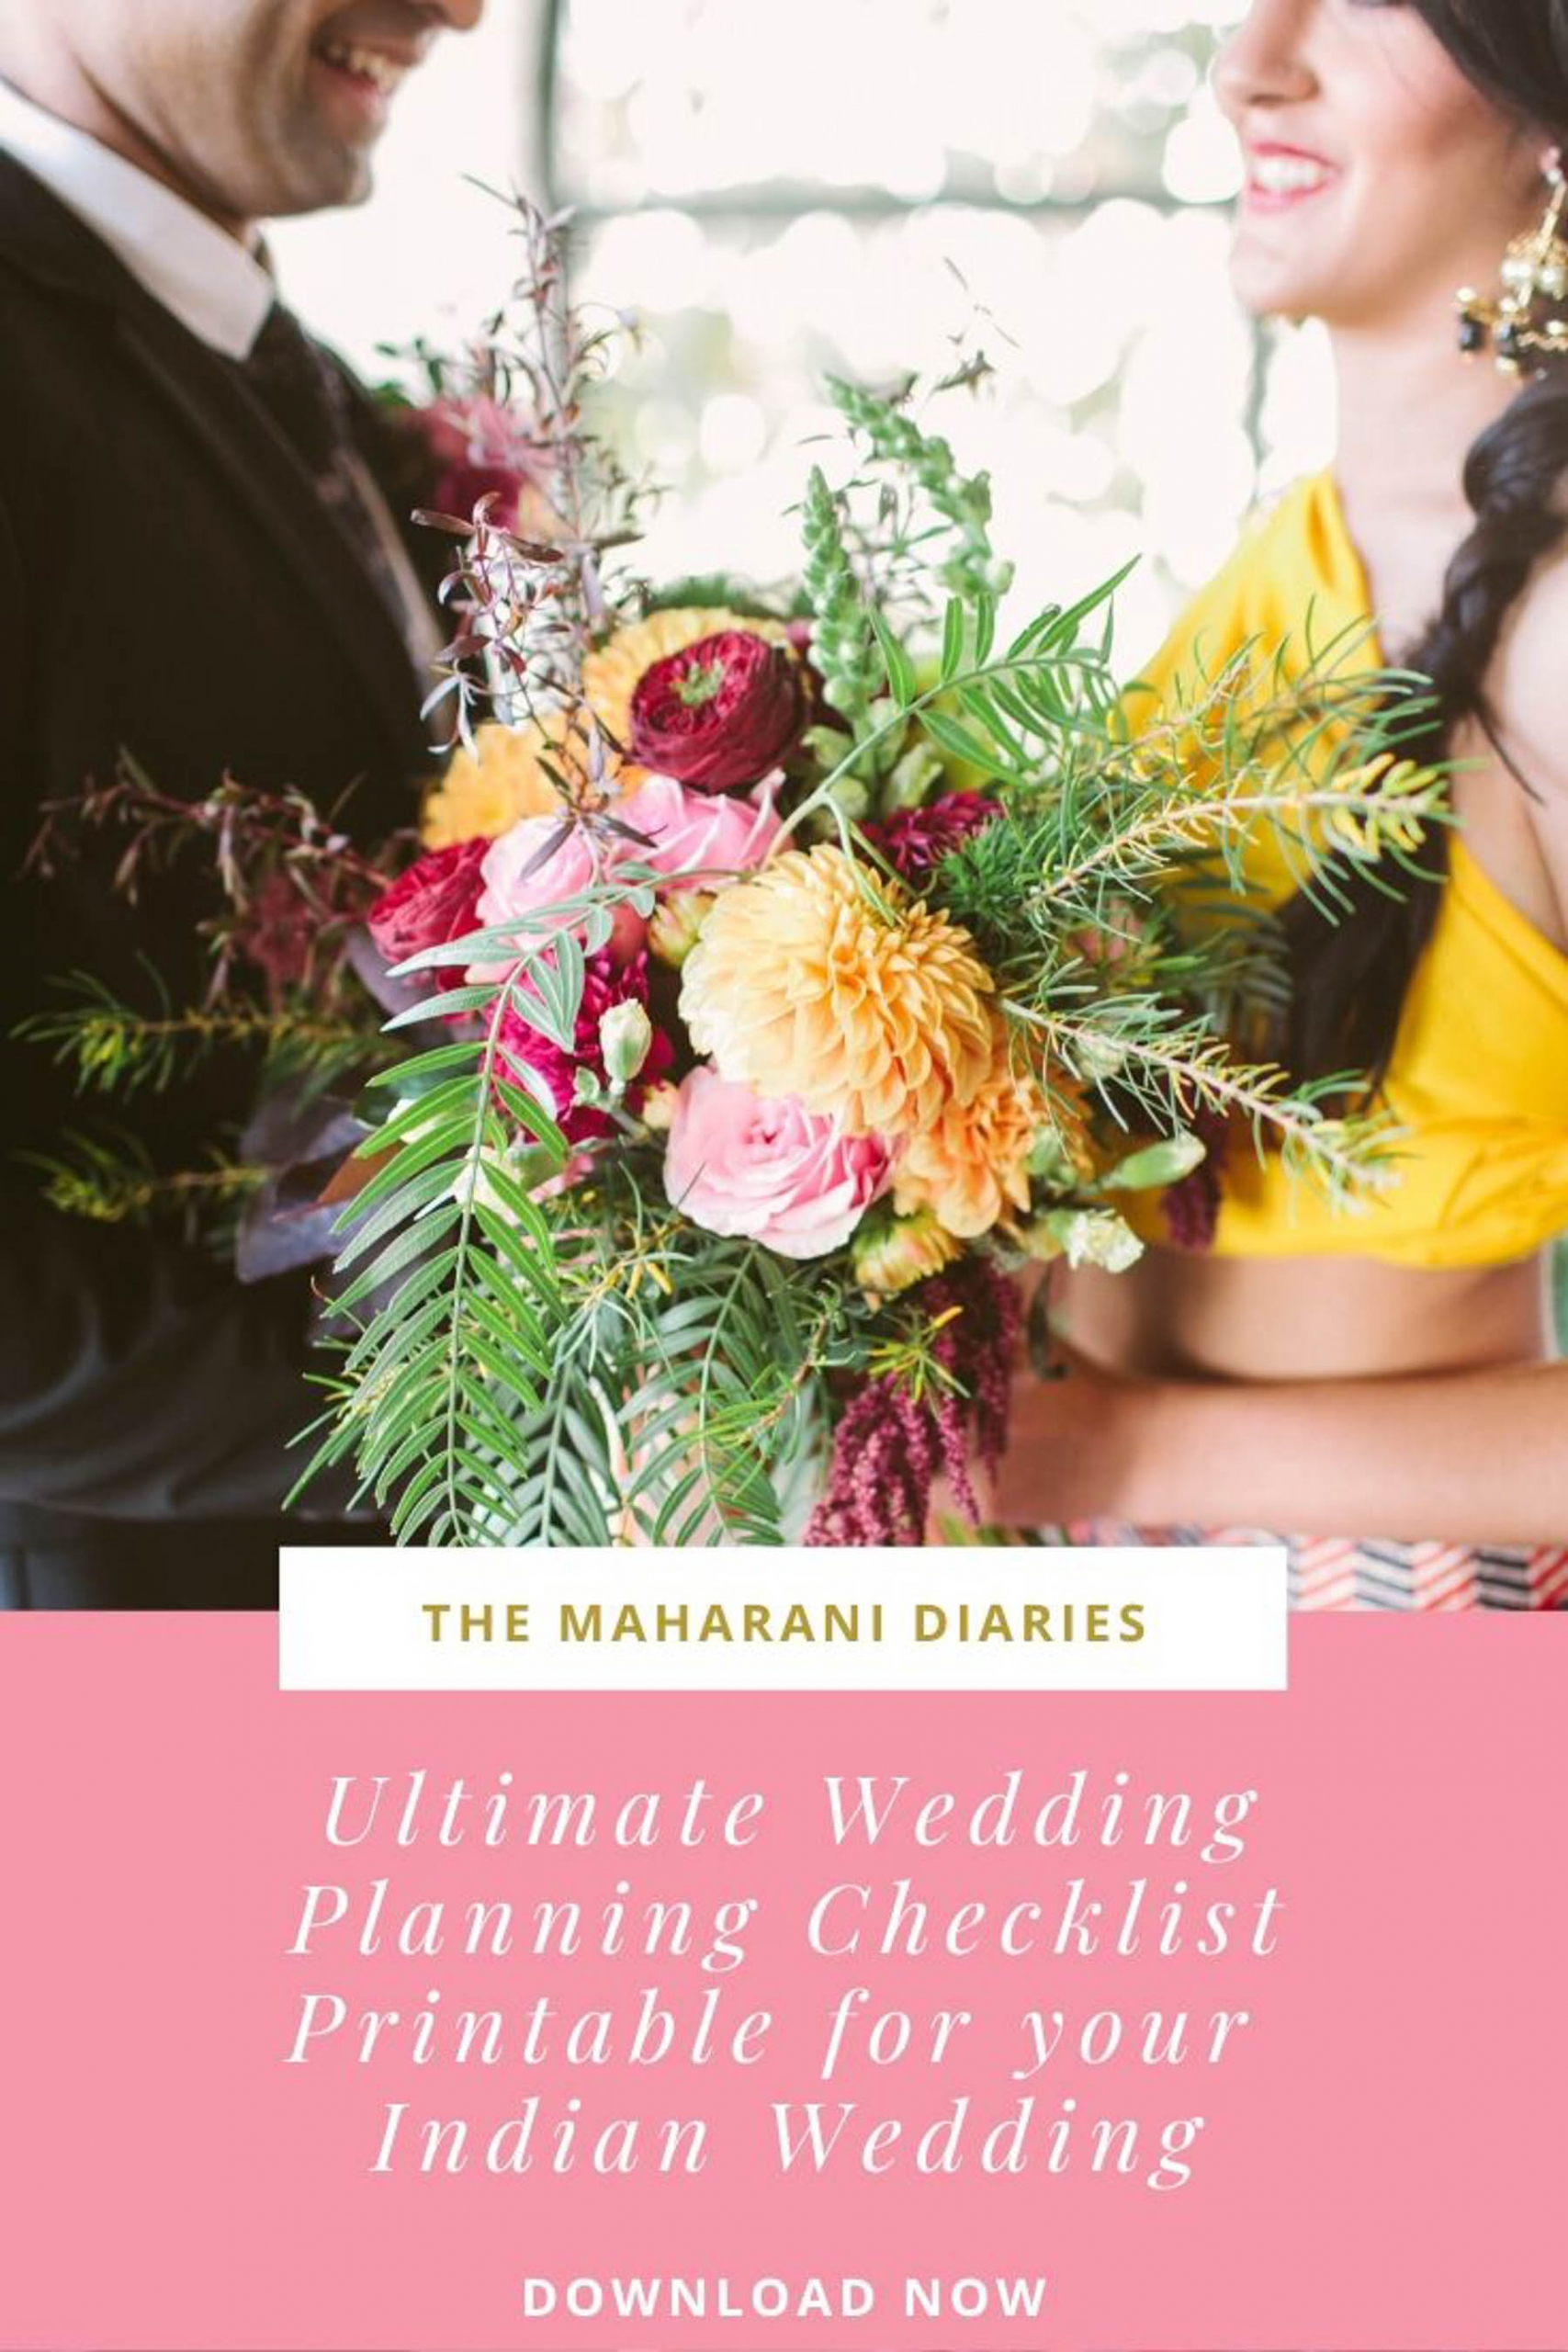 The Maharani Diaries ultimate Indian wedding planning checklist printable